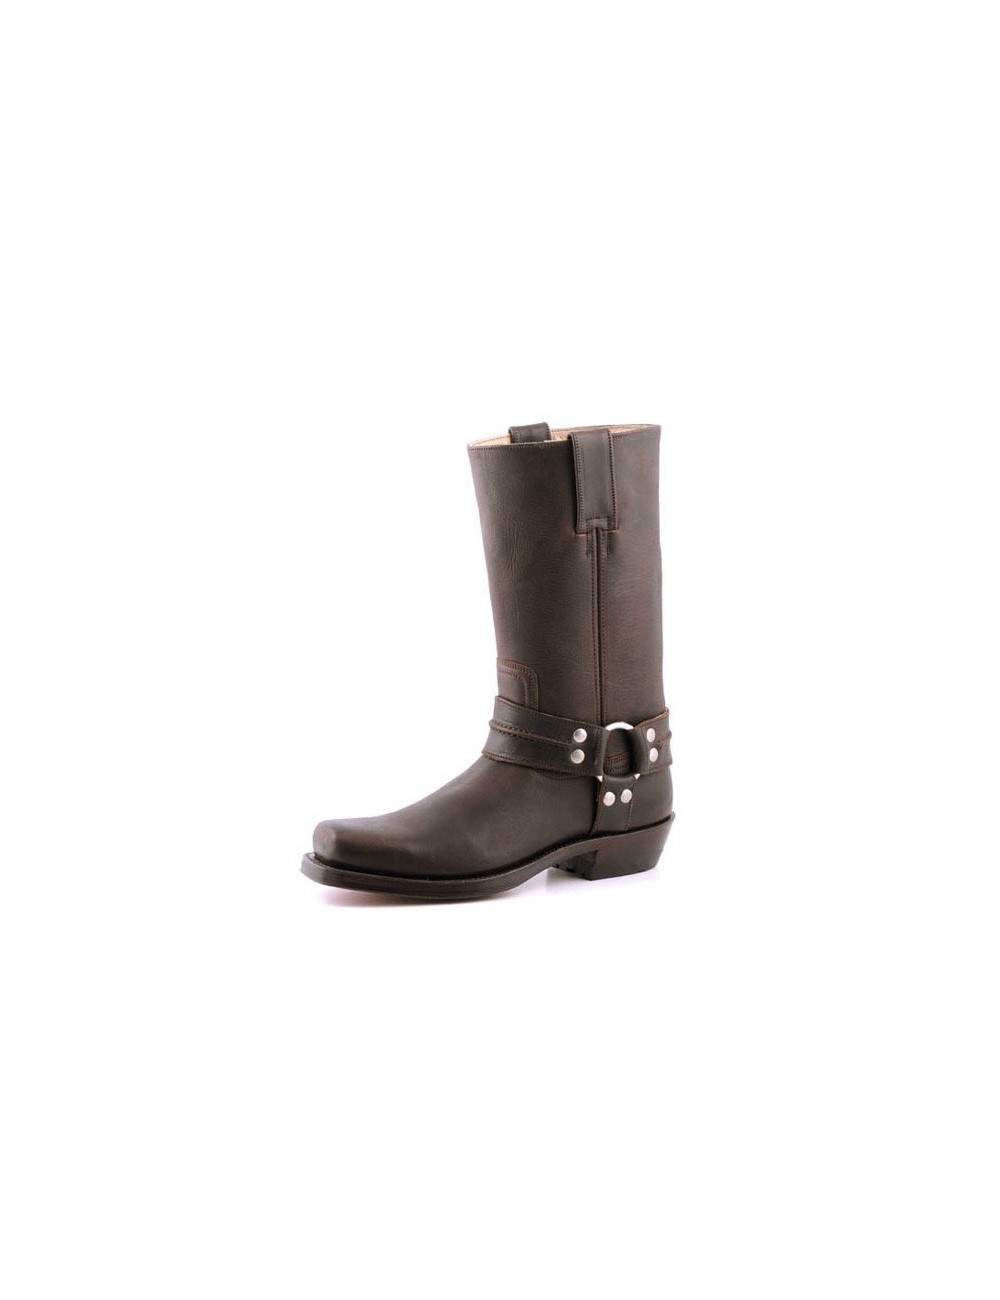 Bottes bikers cuir marron bride à rivets sur mesure